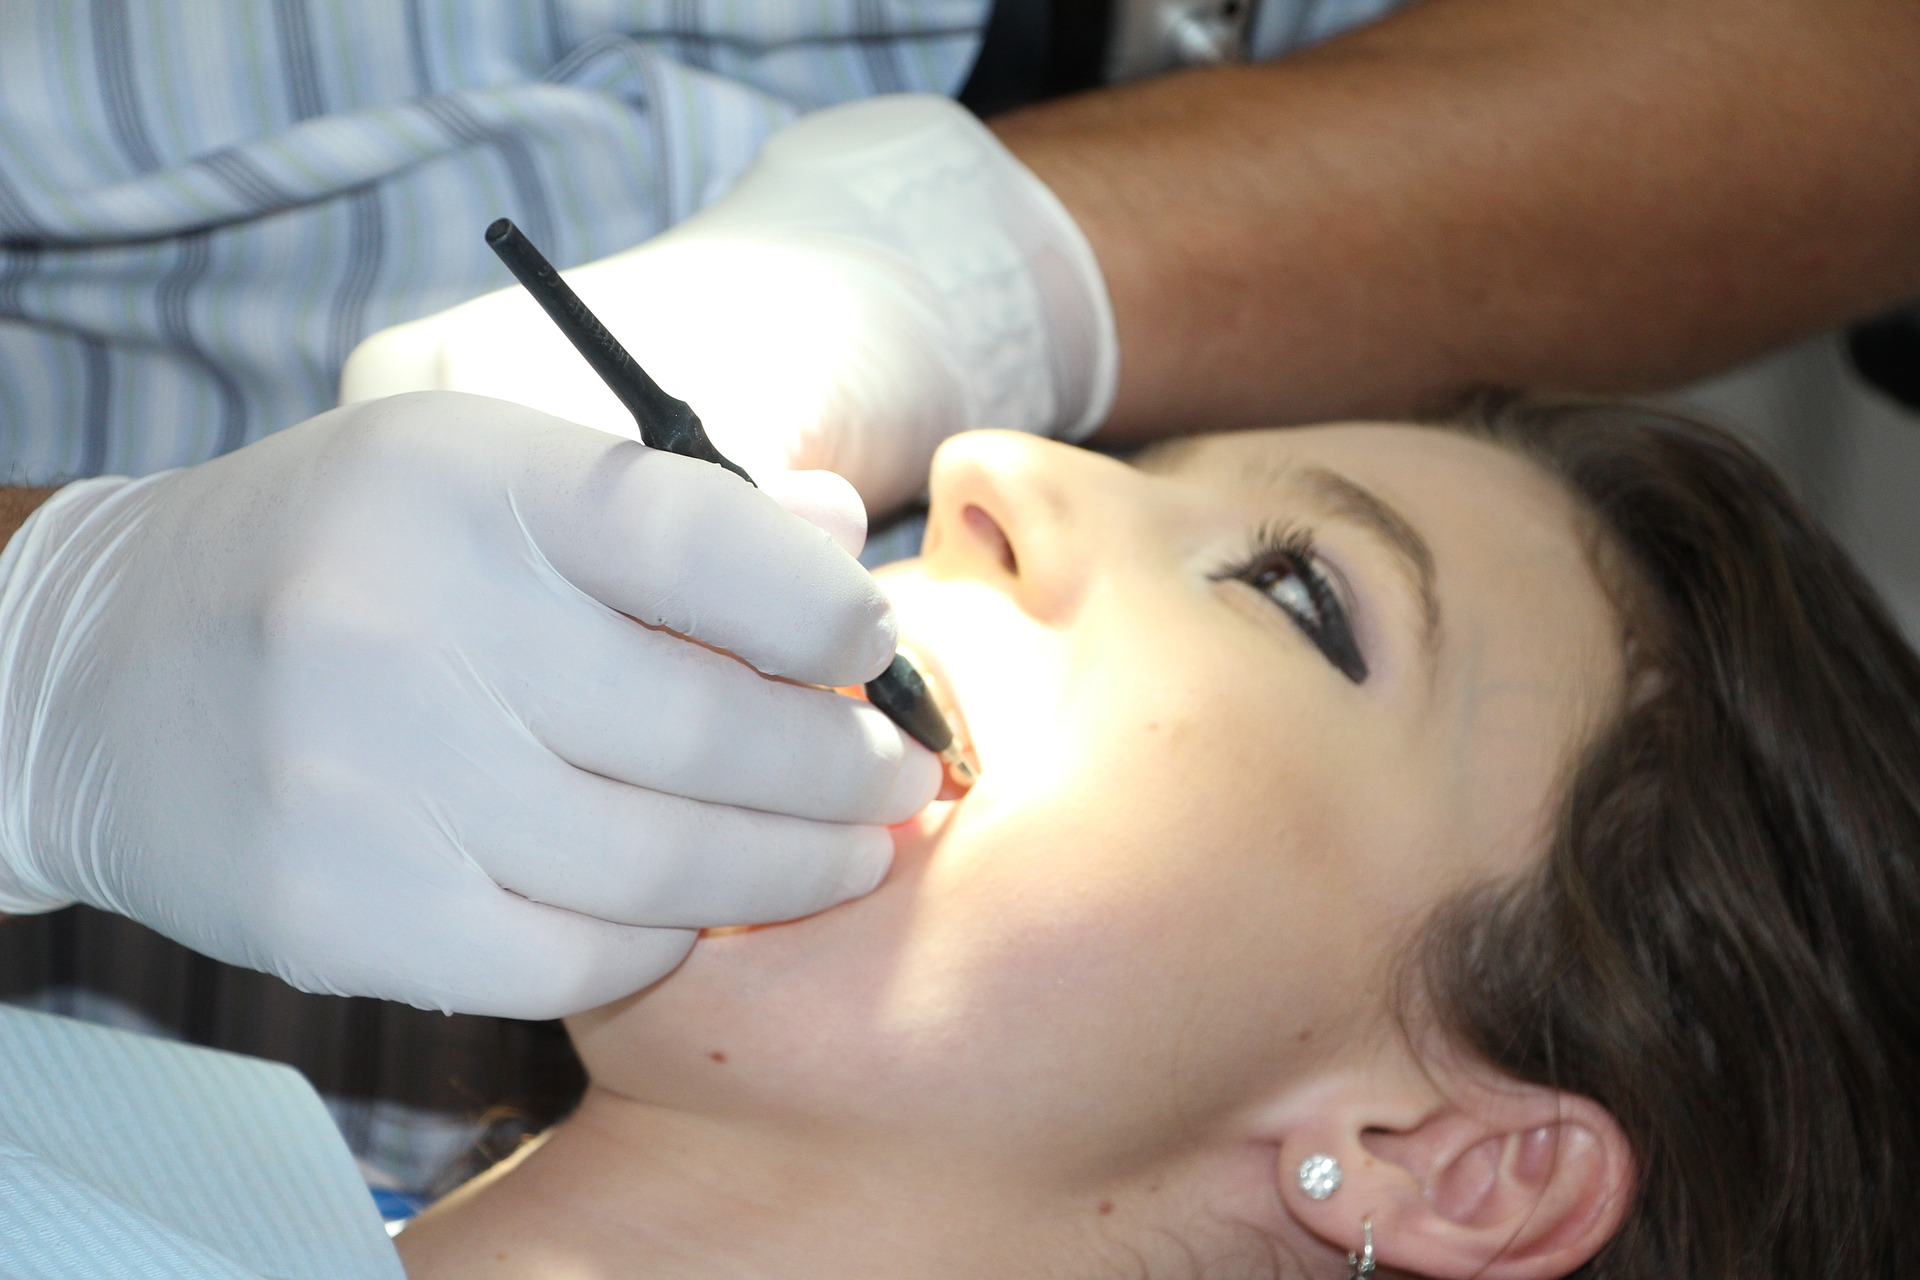 ¿Cómo solucionar una caries dental?